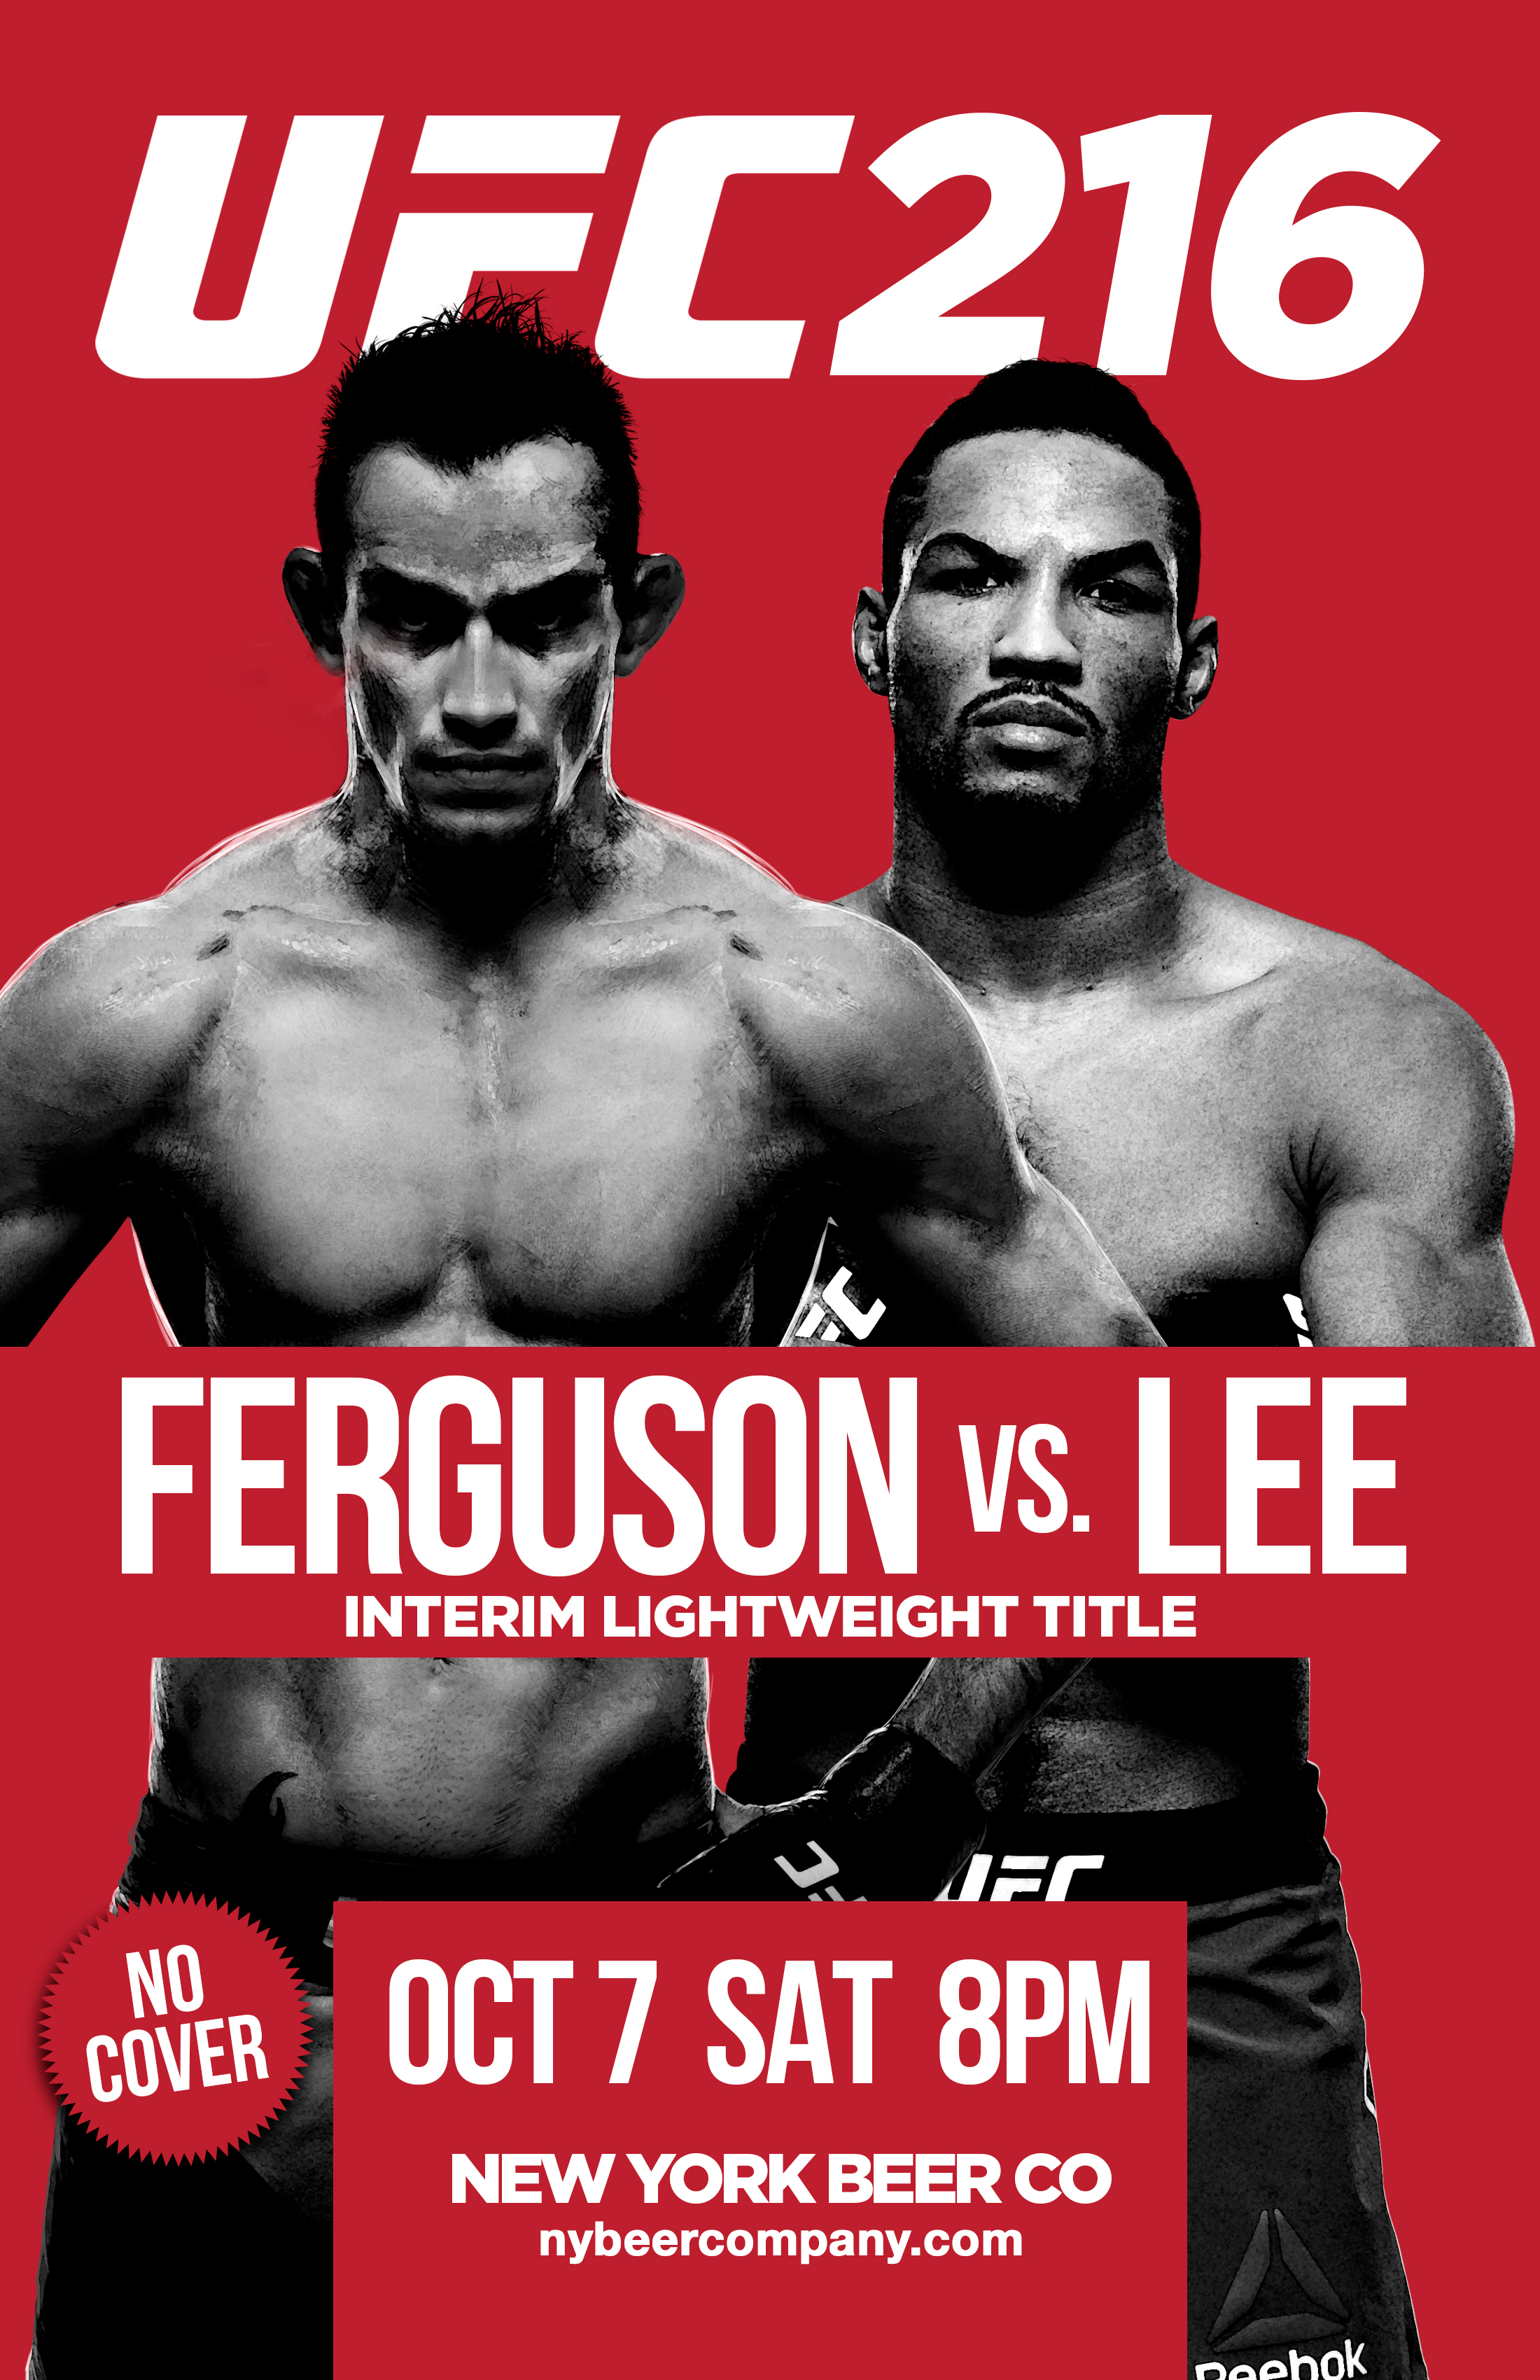 Watch UFC 216 free in NYC bars showing